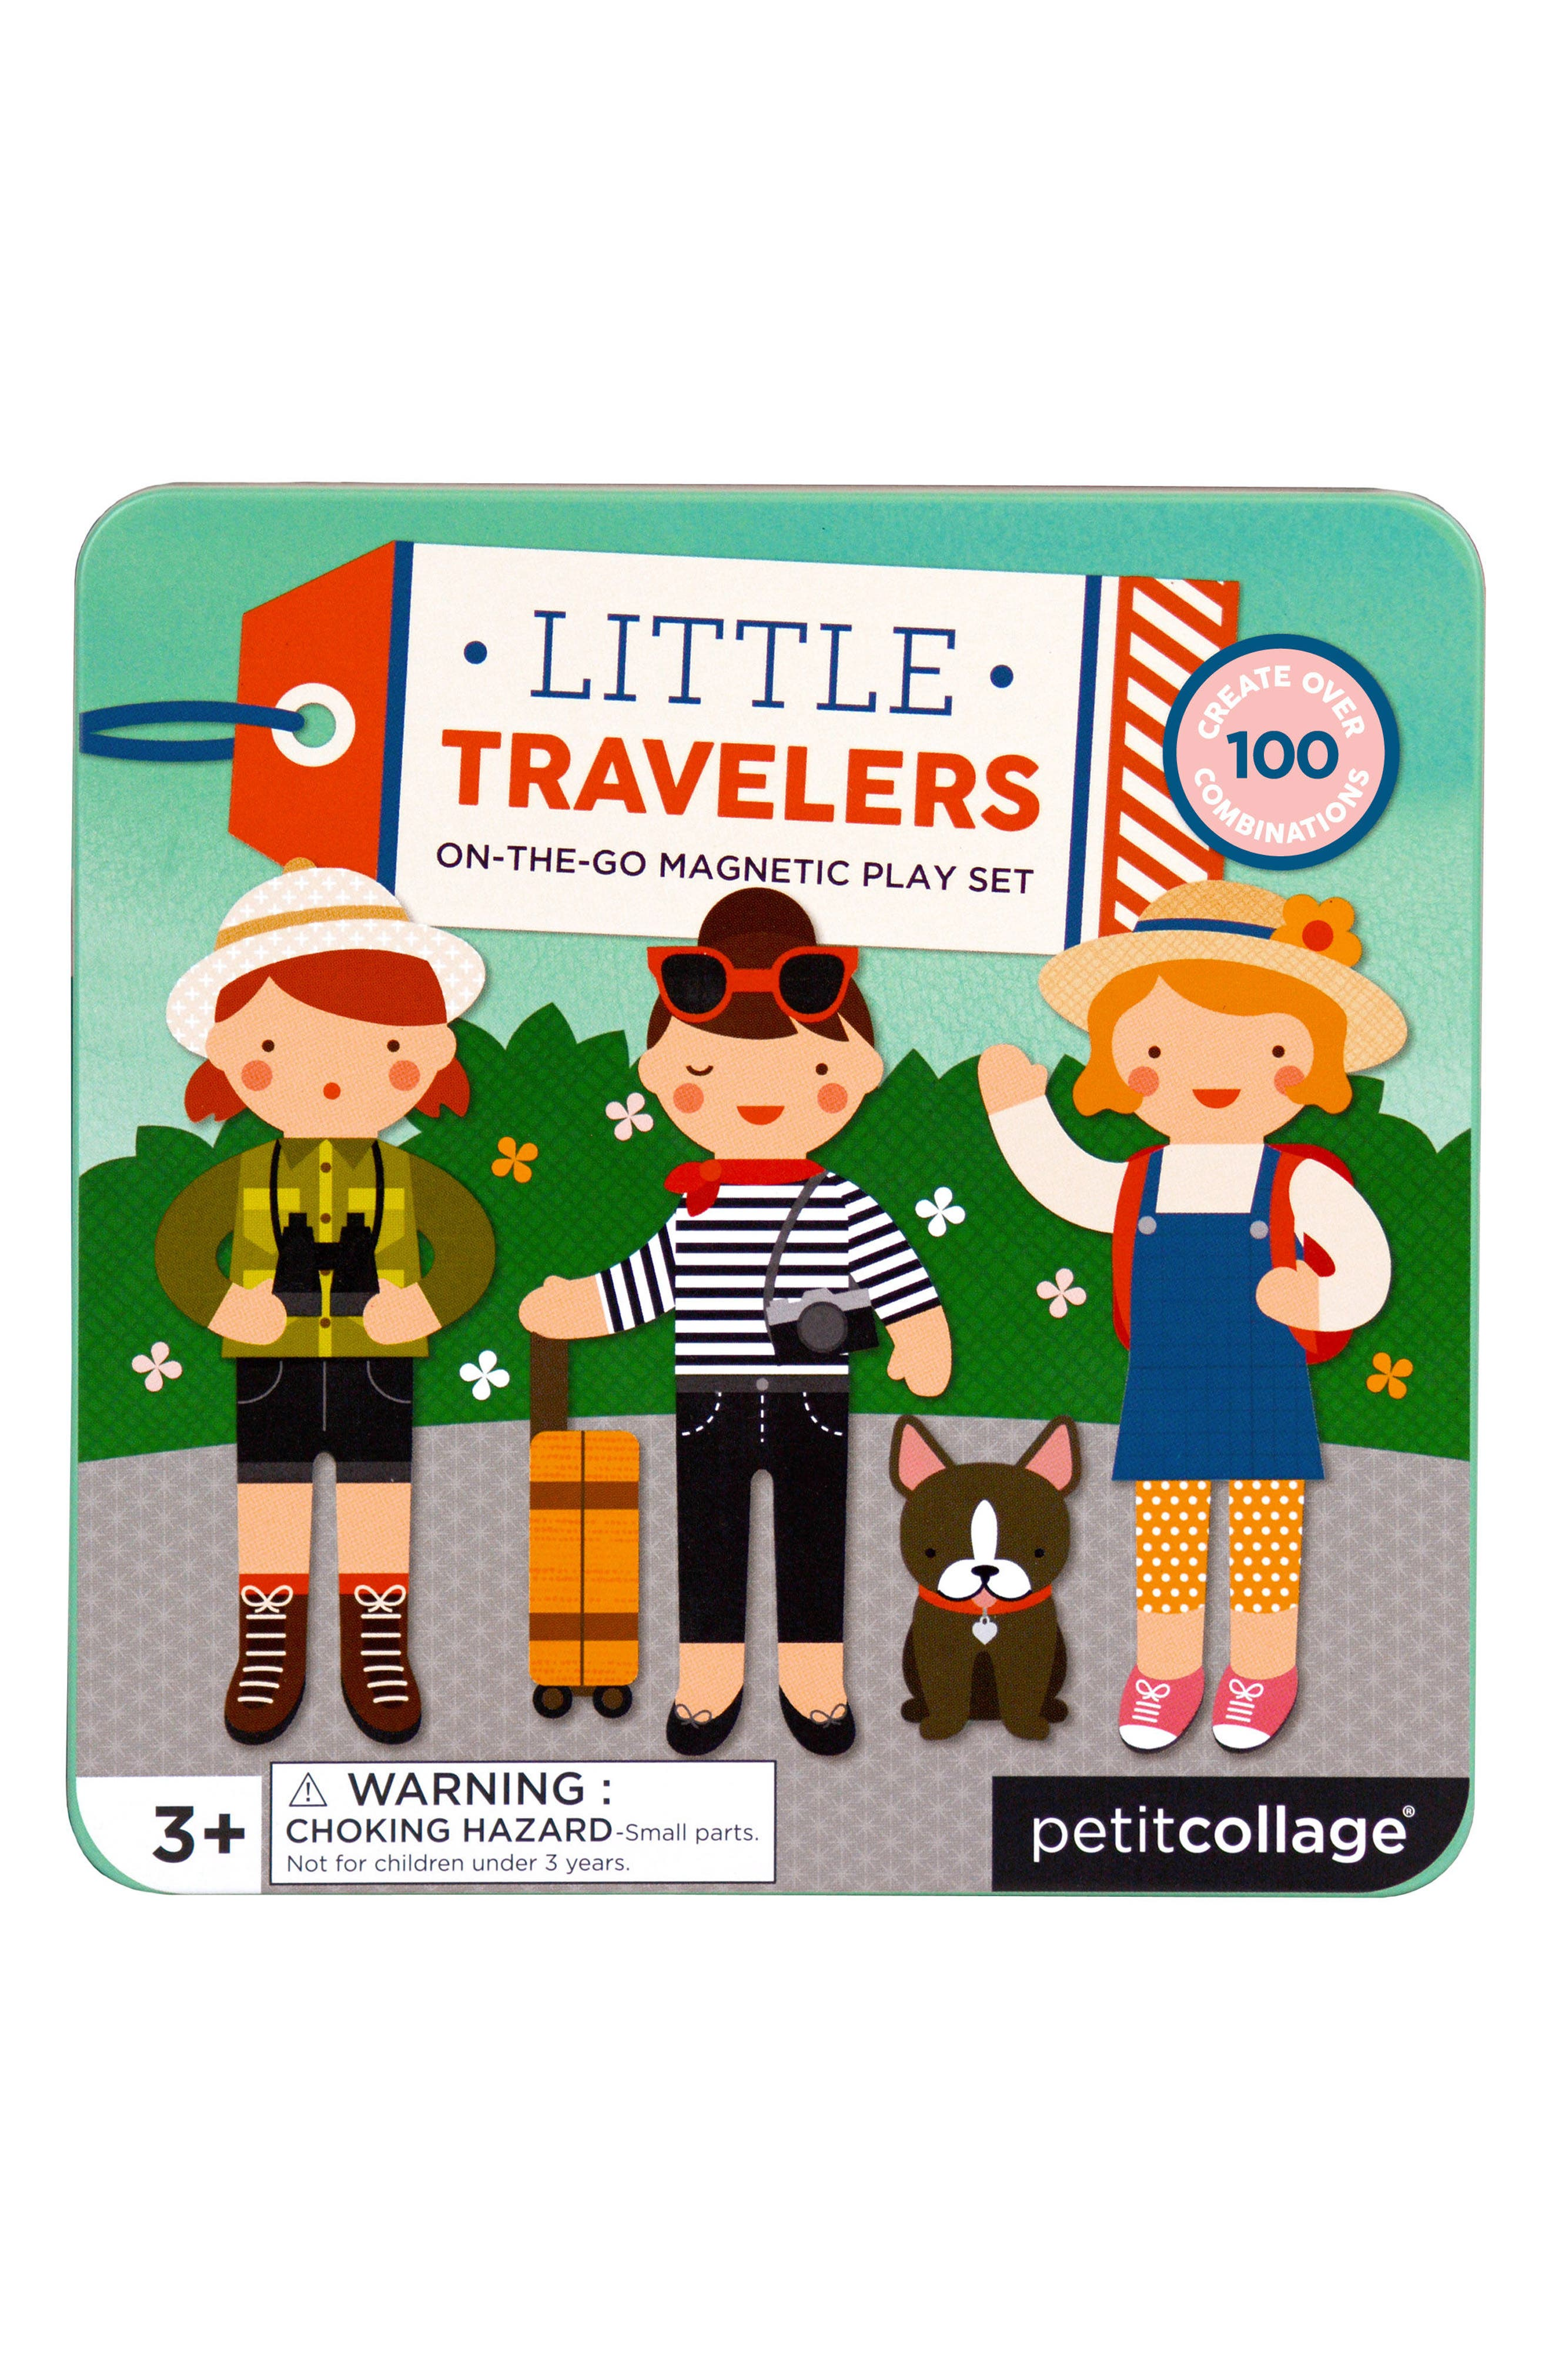 Little Travelers On-the-Go Magnetic Play Set,                             Main thumbnail 1, color,                             300